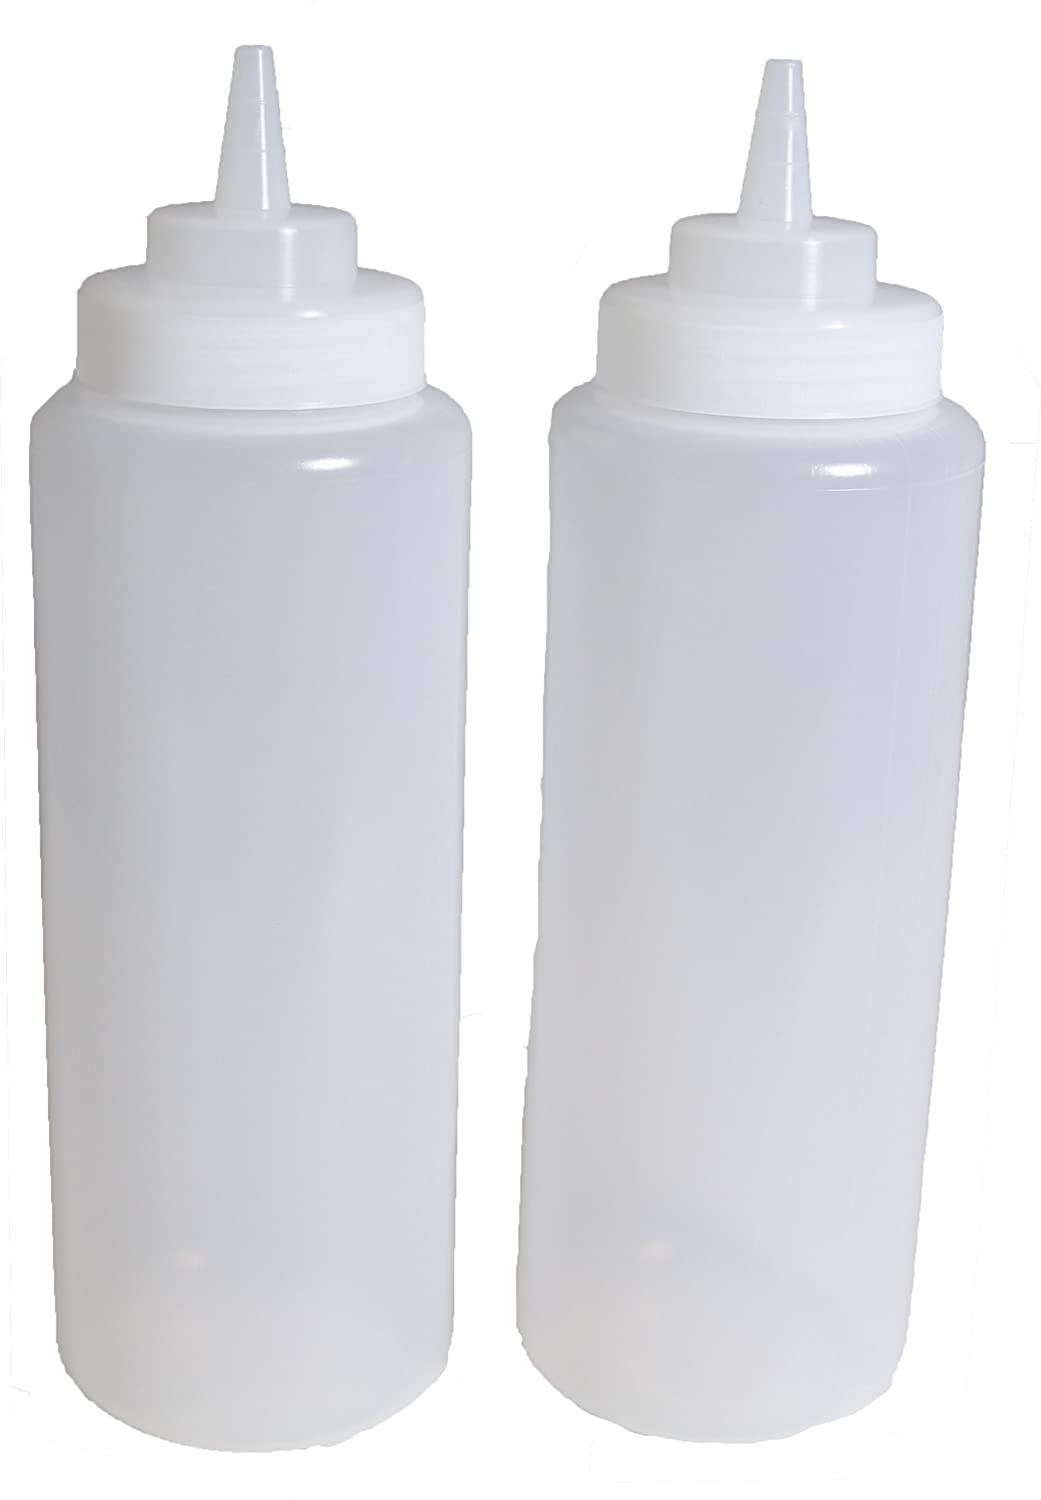 d2d27066a8f9 SET of 2, 32 Oz. (Ounce) Large Clear Squeeze Bottle, Condiment Squeeze  Bottle, Open-tip, Wide Screw-on Spout, Polyethylene Durable Plastic, Diner  ...